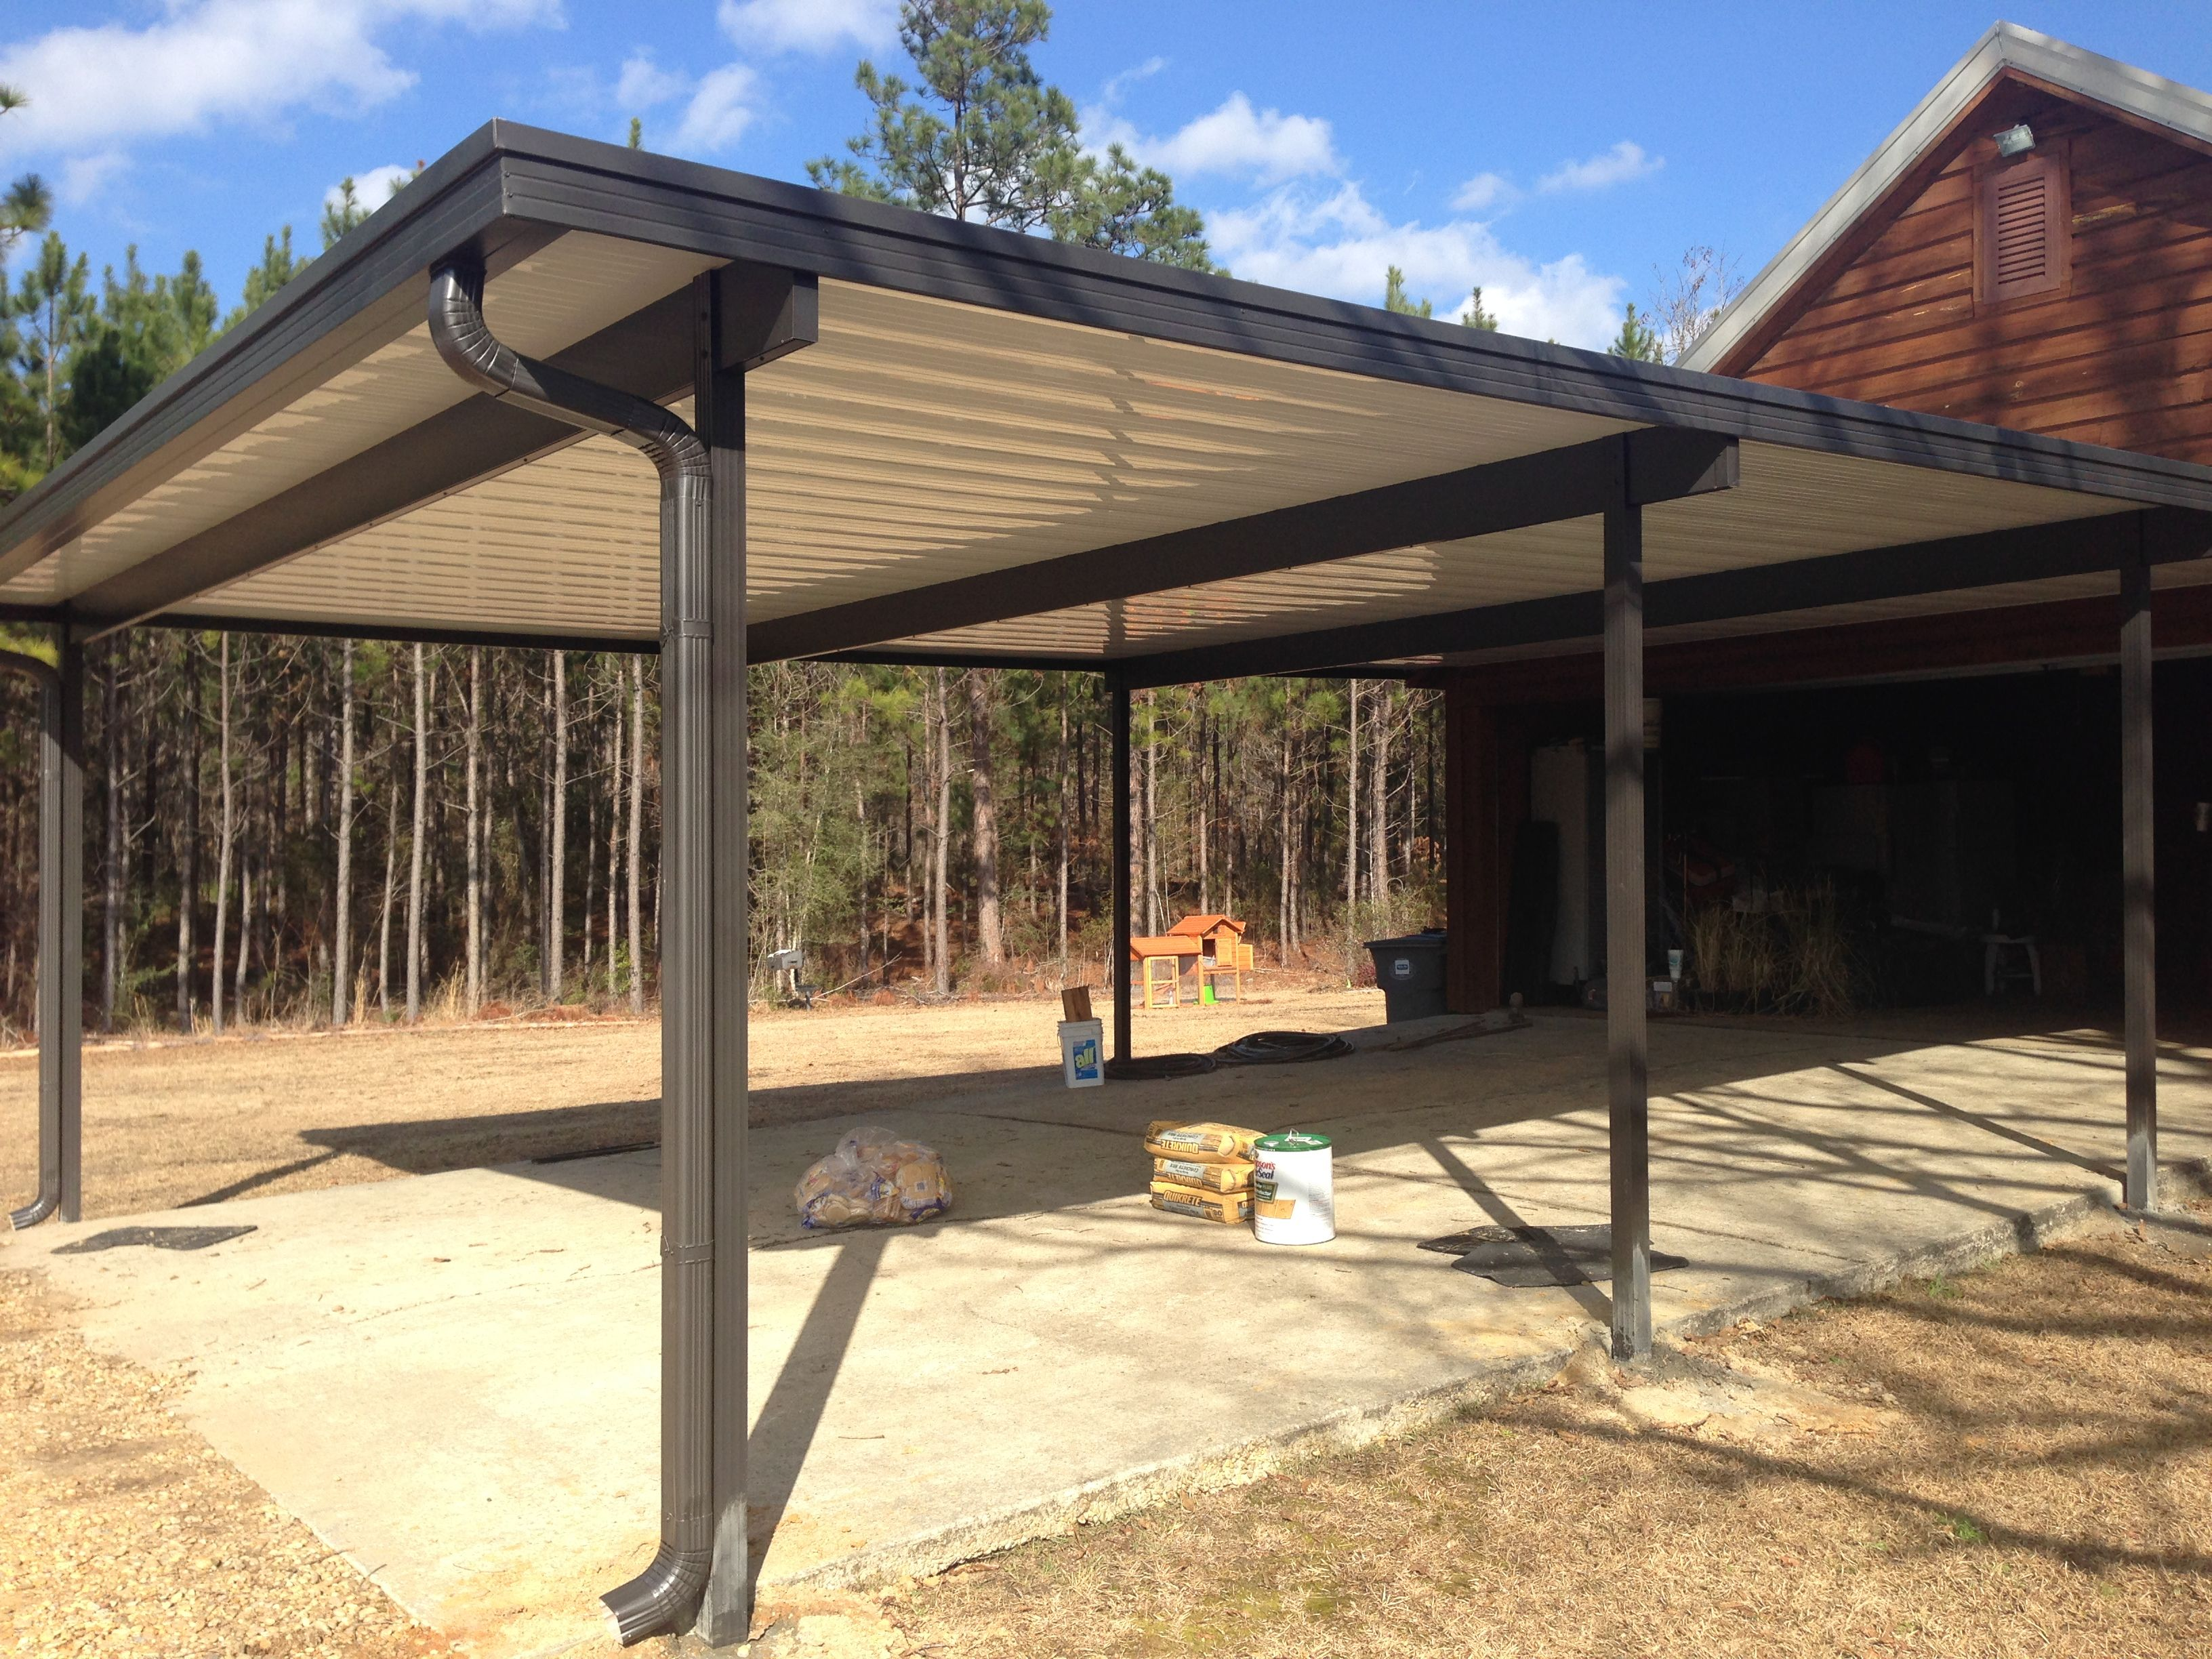 22 By 30 White Top Carport With 6 Bronze Beams Bronze Rain Gutters And Downspouts And 4 Bronze Posts Set Into C Rustic Pergola Aluminum Carport Pergola